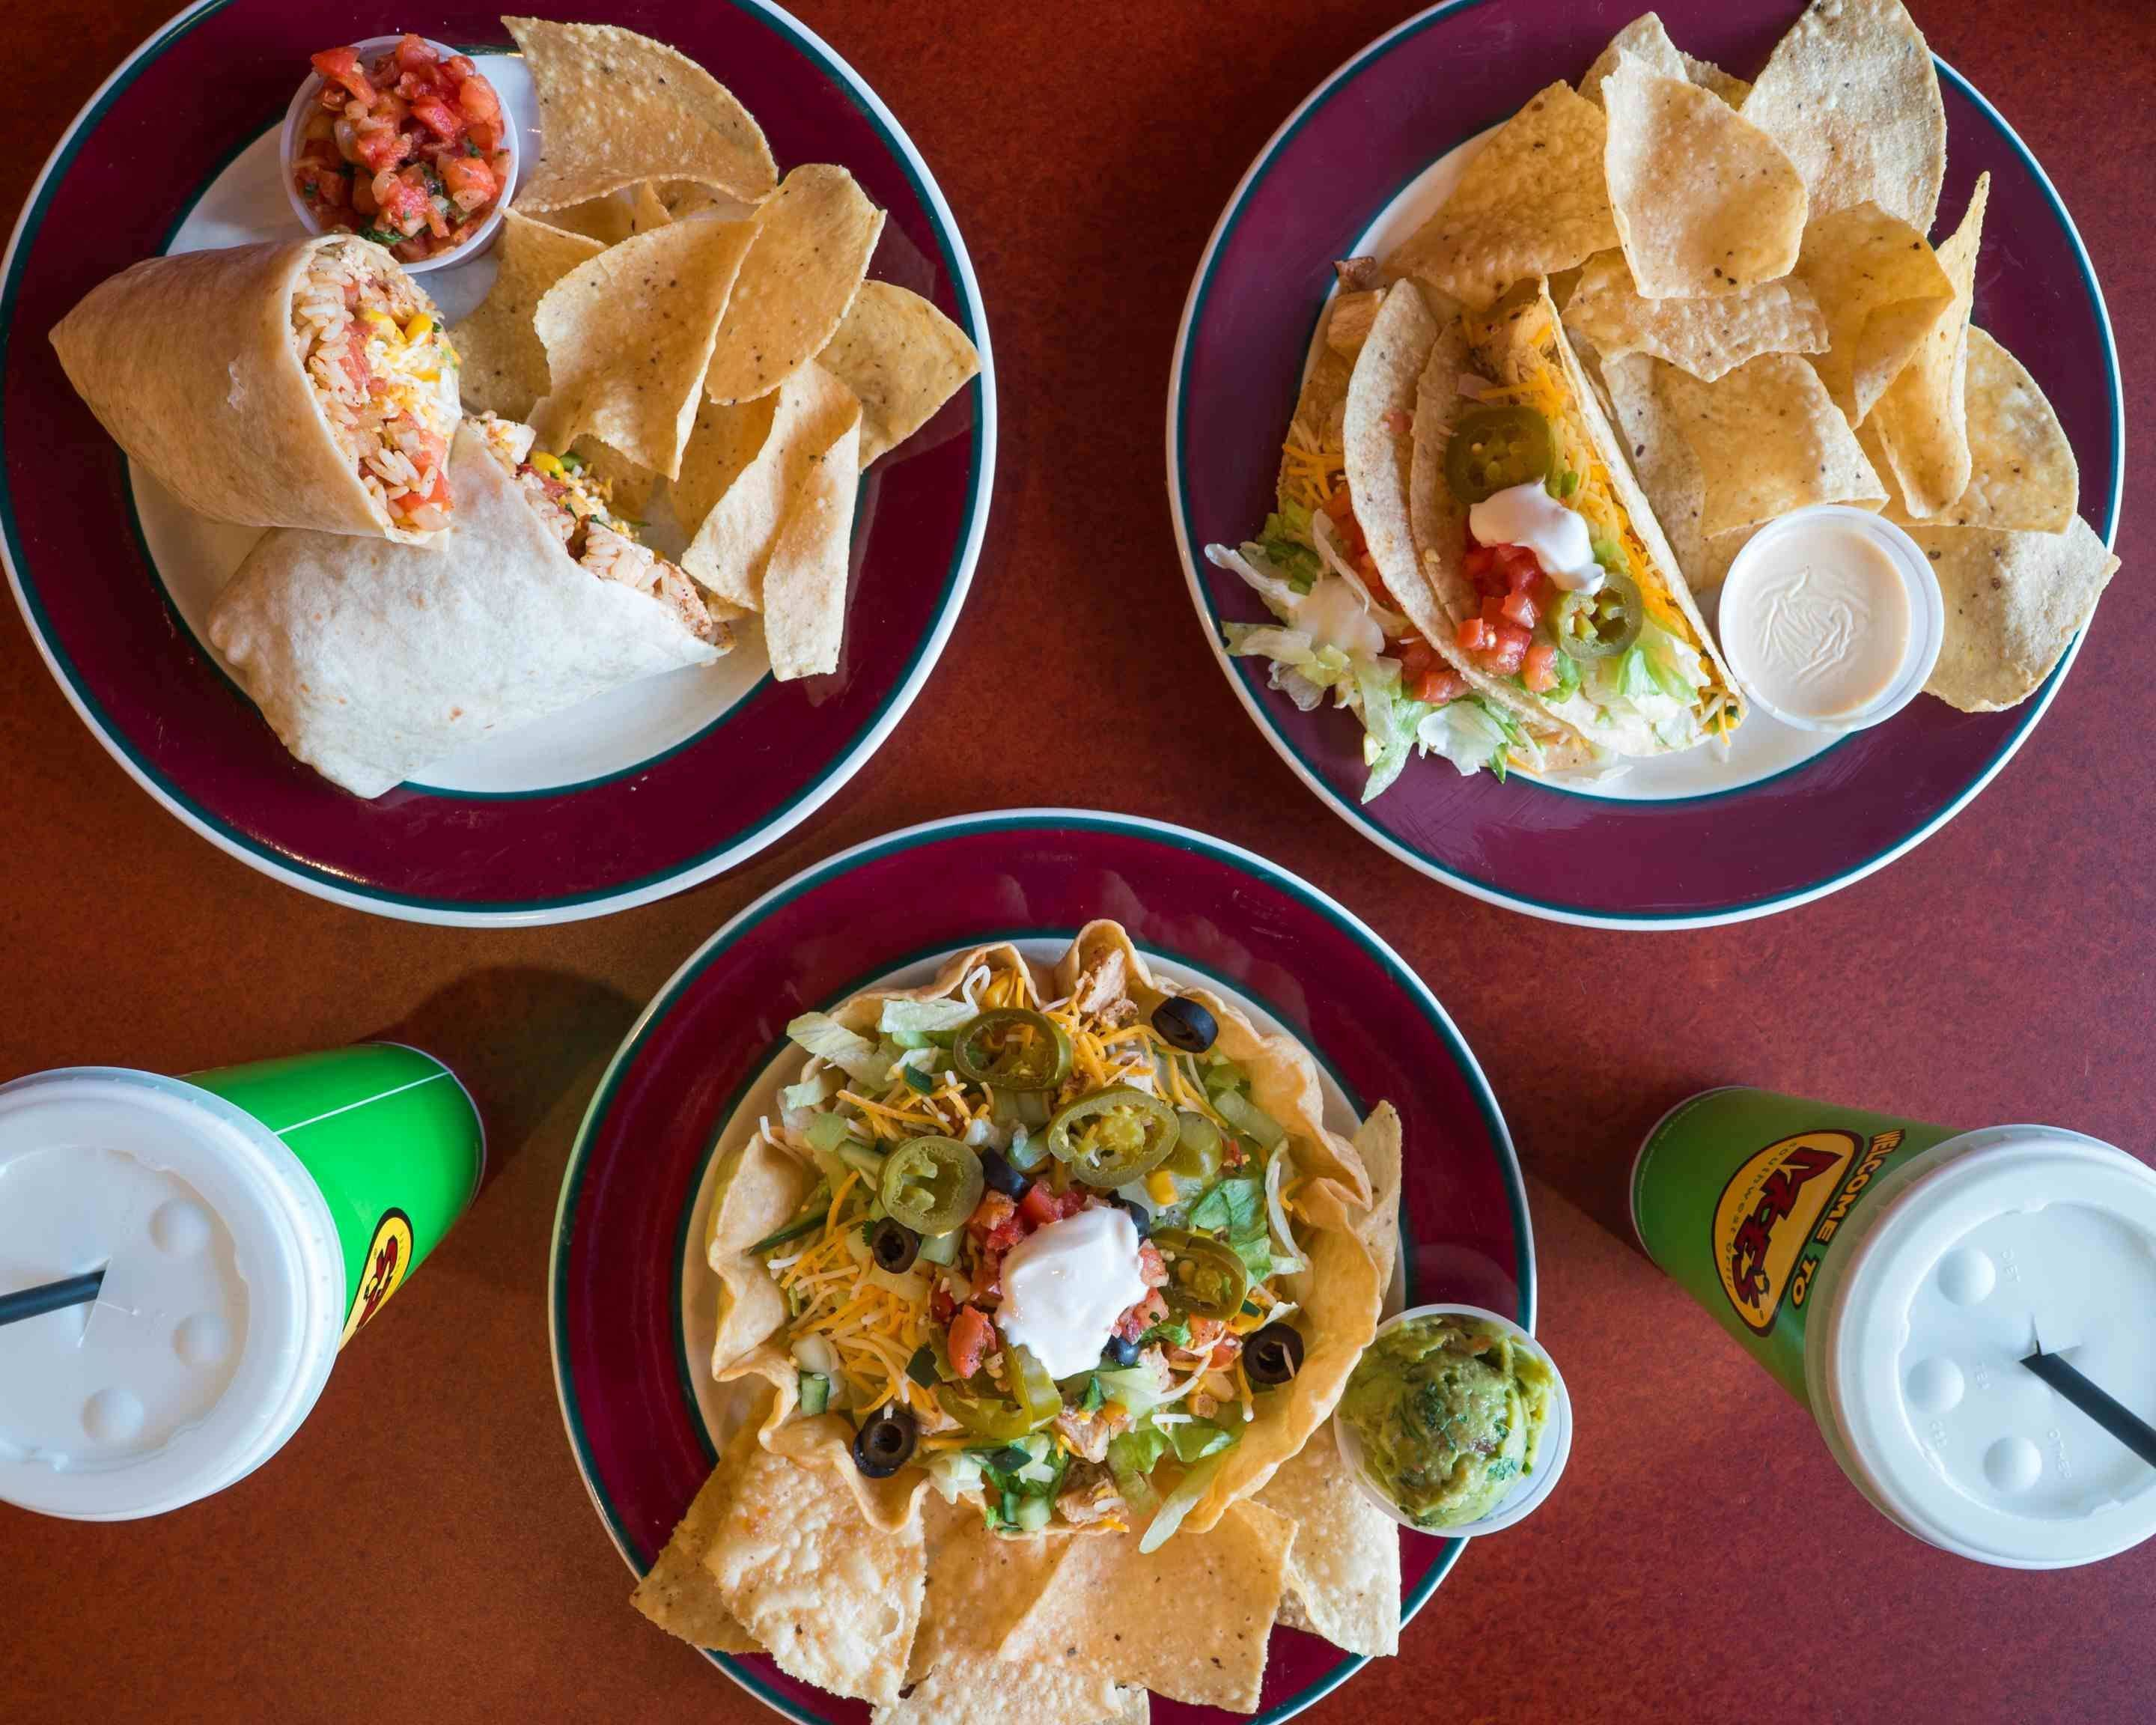 Moe S Southwest Grill 39 Photos 47 Reviews Mexican 1350 Capitol Dr Pewaukee Wi Restaurant Reviews Phone Number Menu